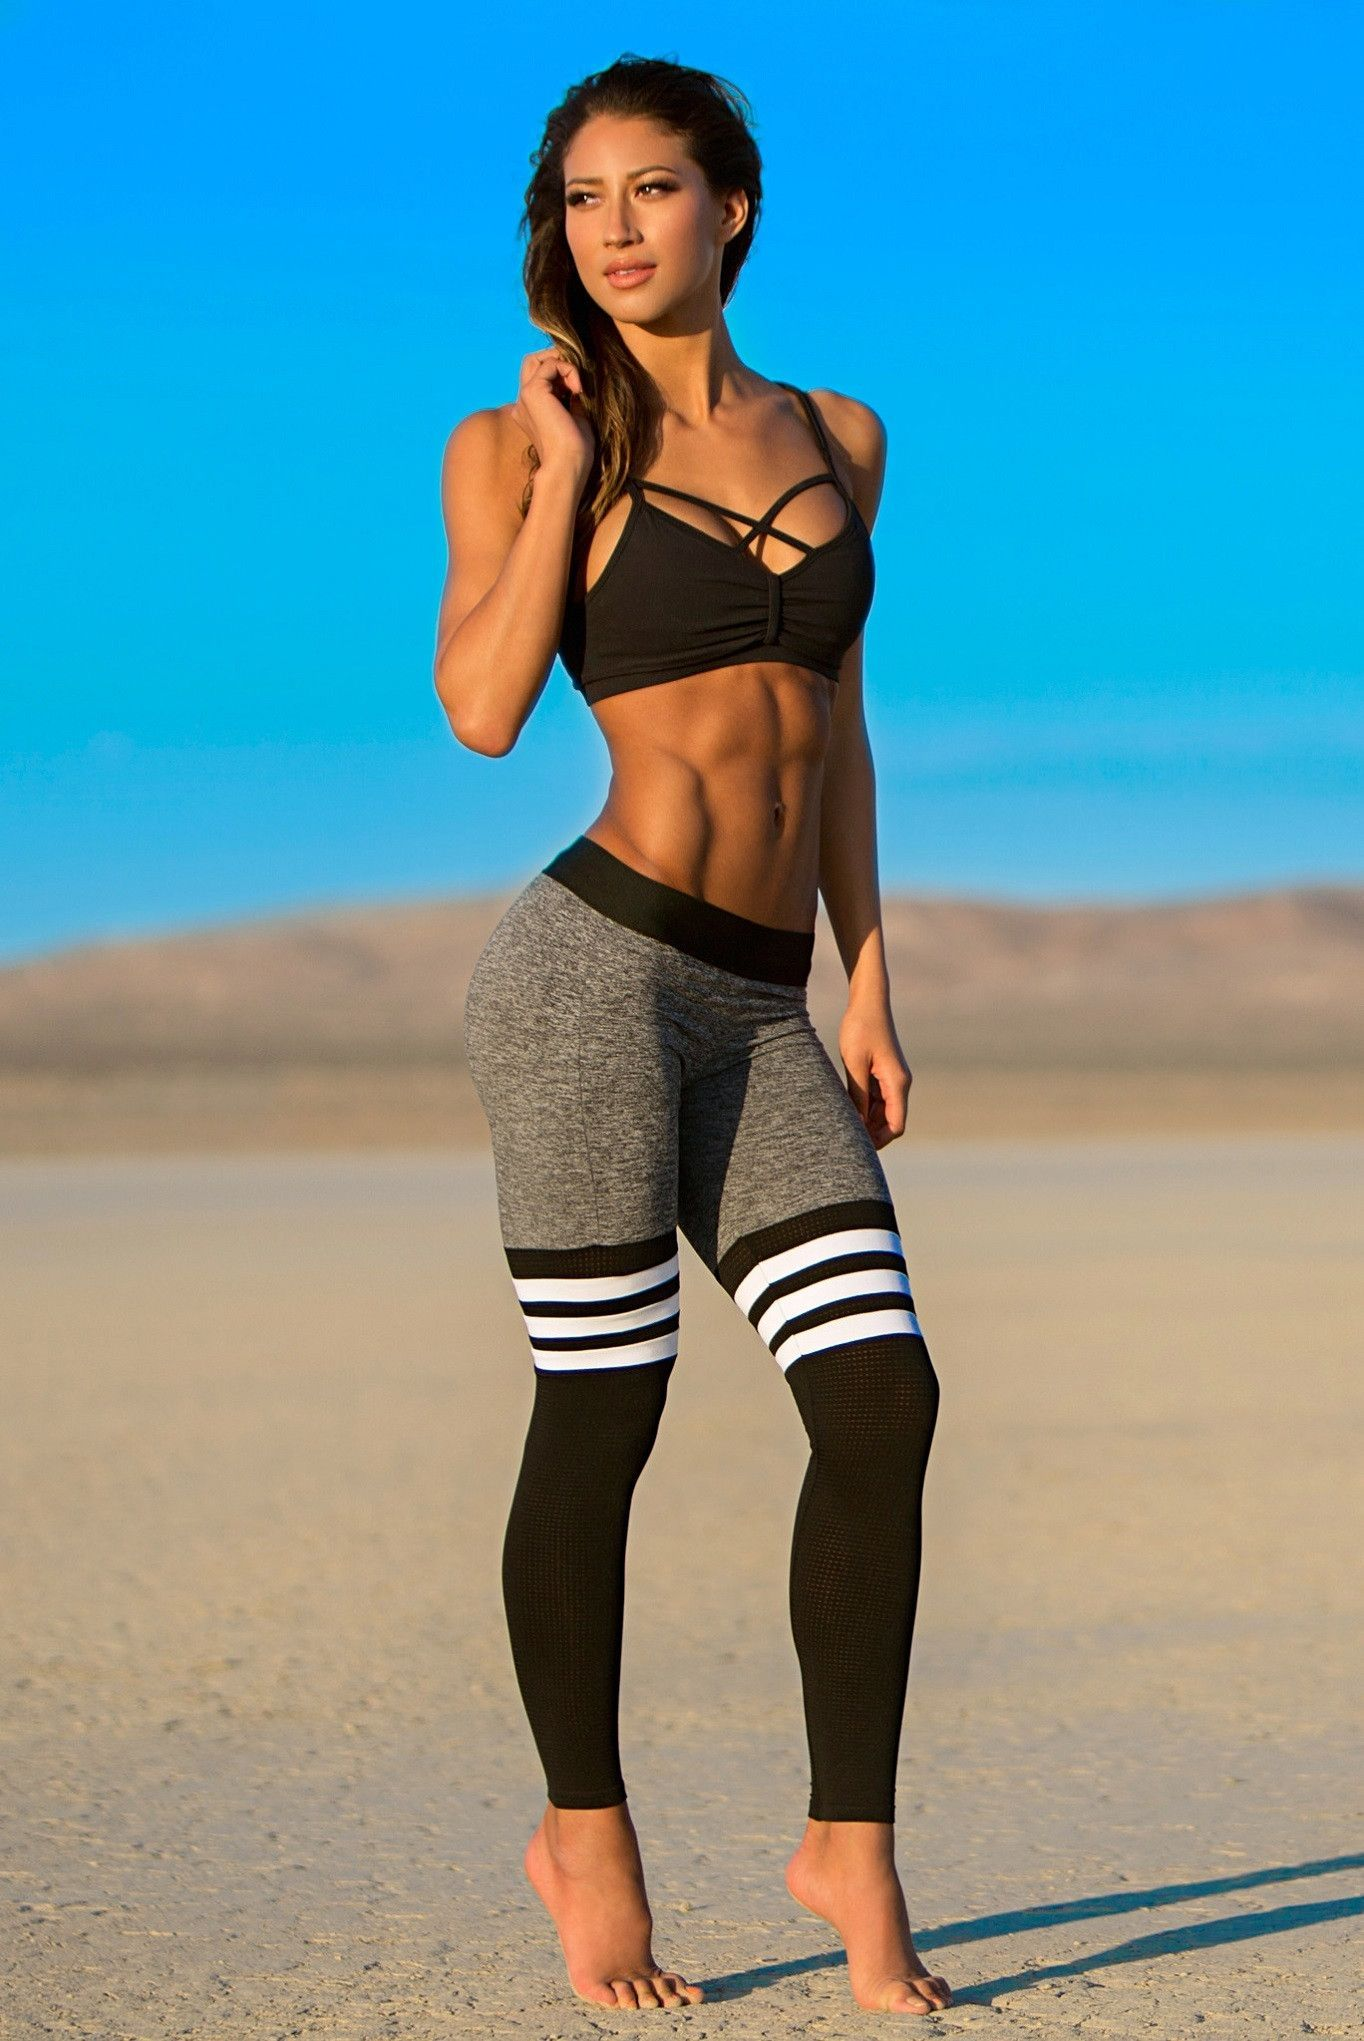 ba5b5c32aeb78 Why workout in boring old gym clothes when you can workout in these stylish  Bombshell Leggings. These leggings will make you want to be more active  than ...